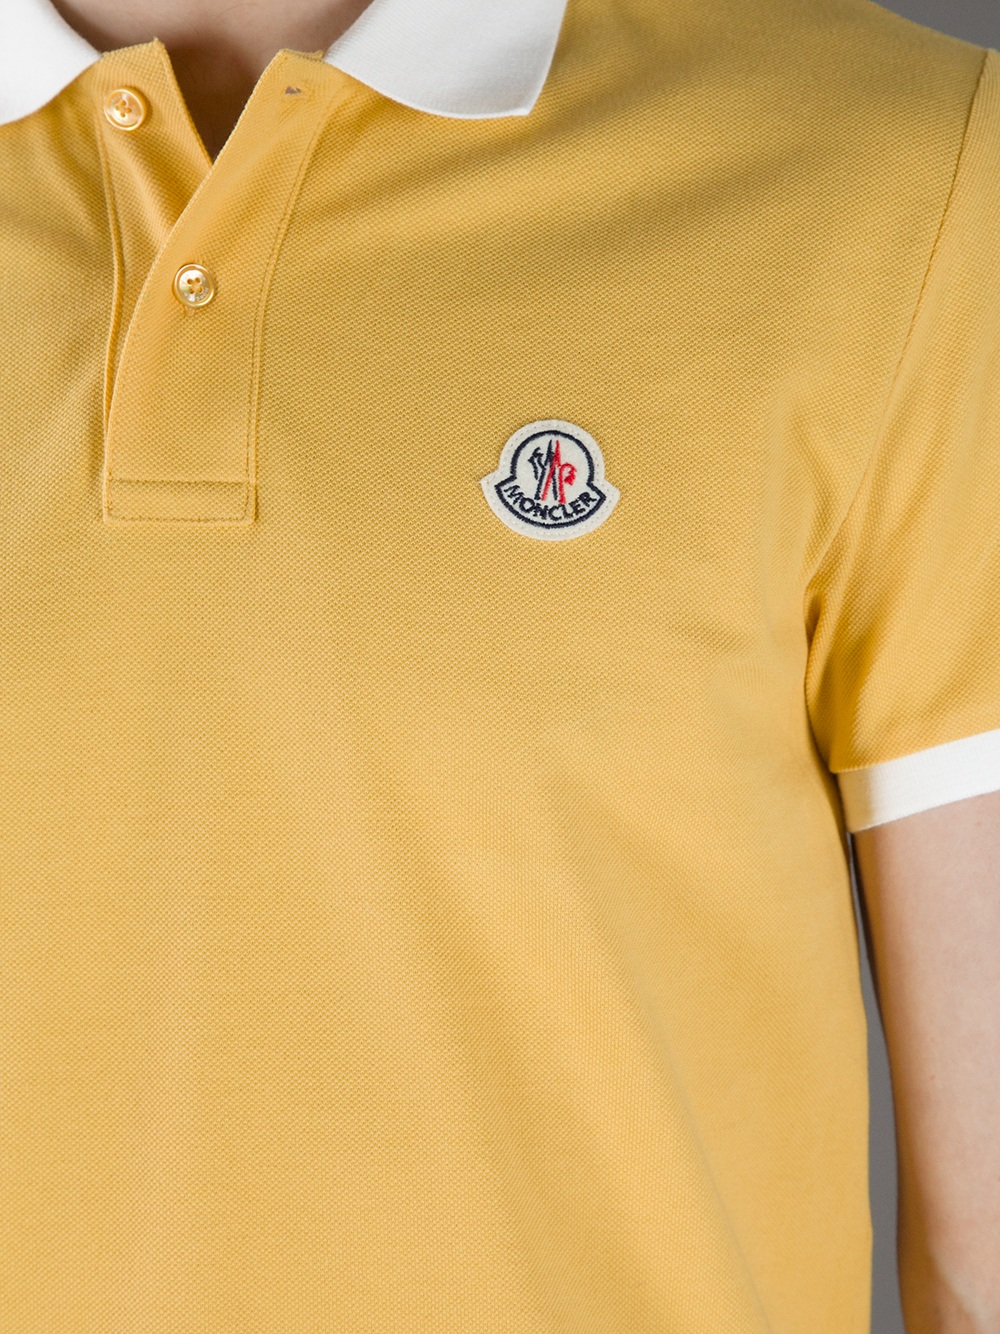 0bfbdab1a7c5 closeout yellow polo shirt with white collar 17dea 07337